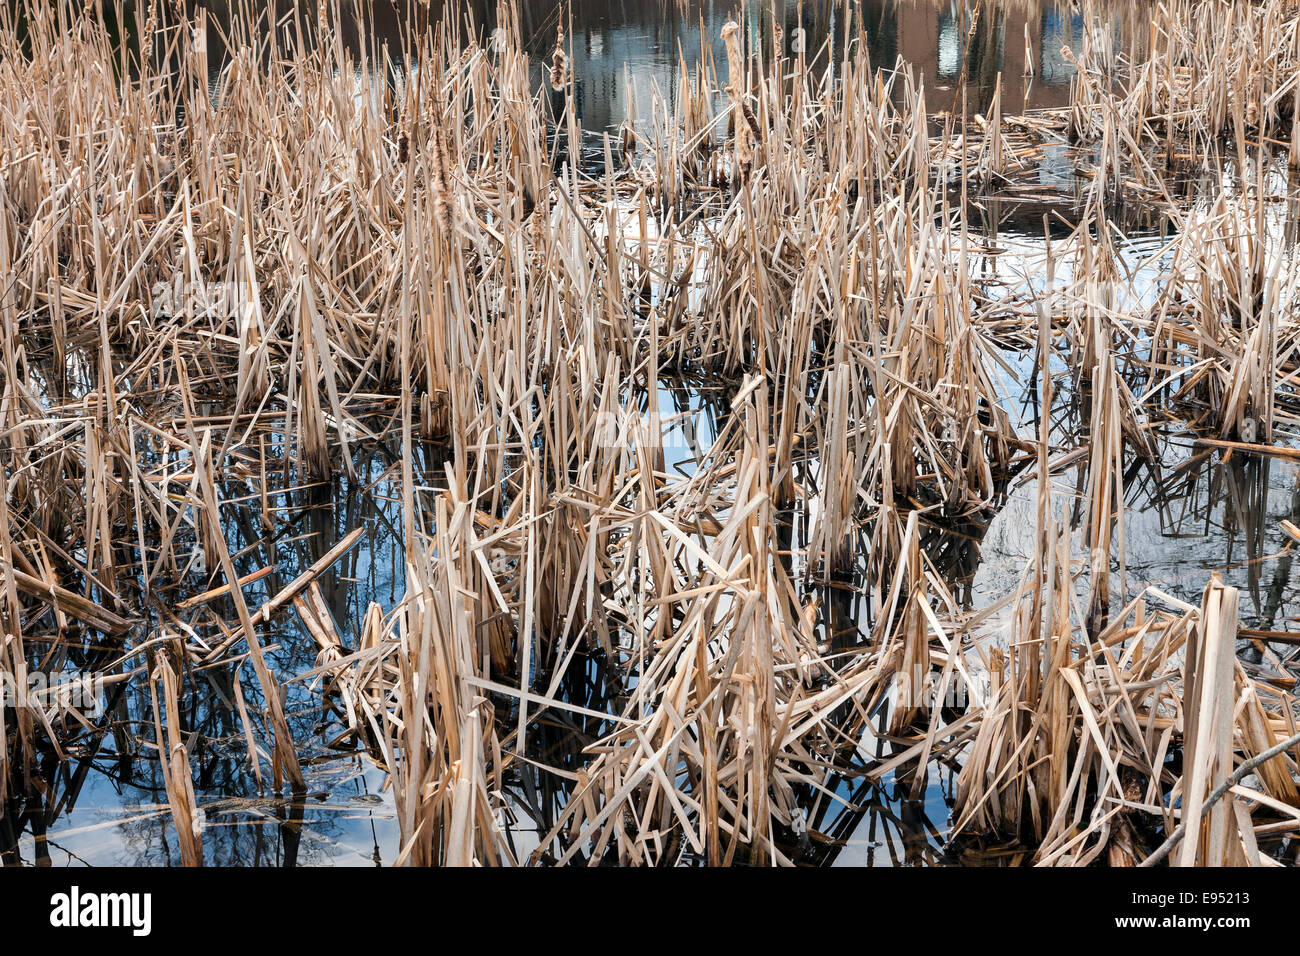 Swamp with dead plants at autumn - Stock Image